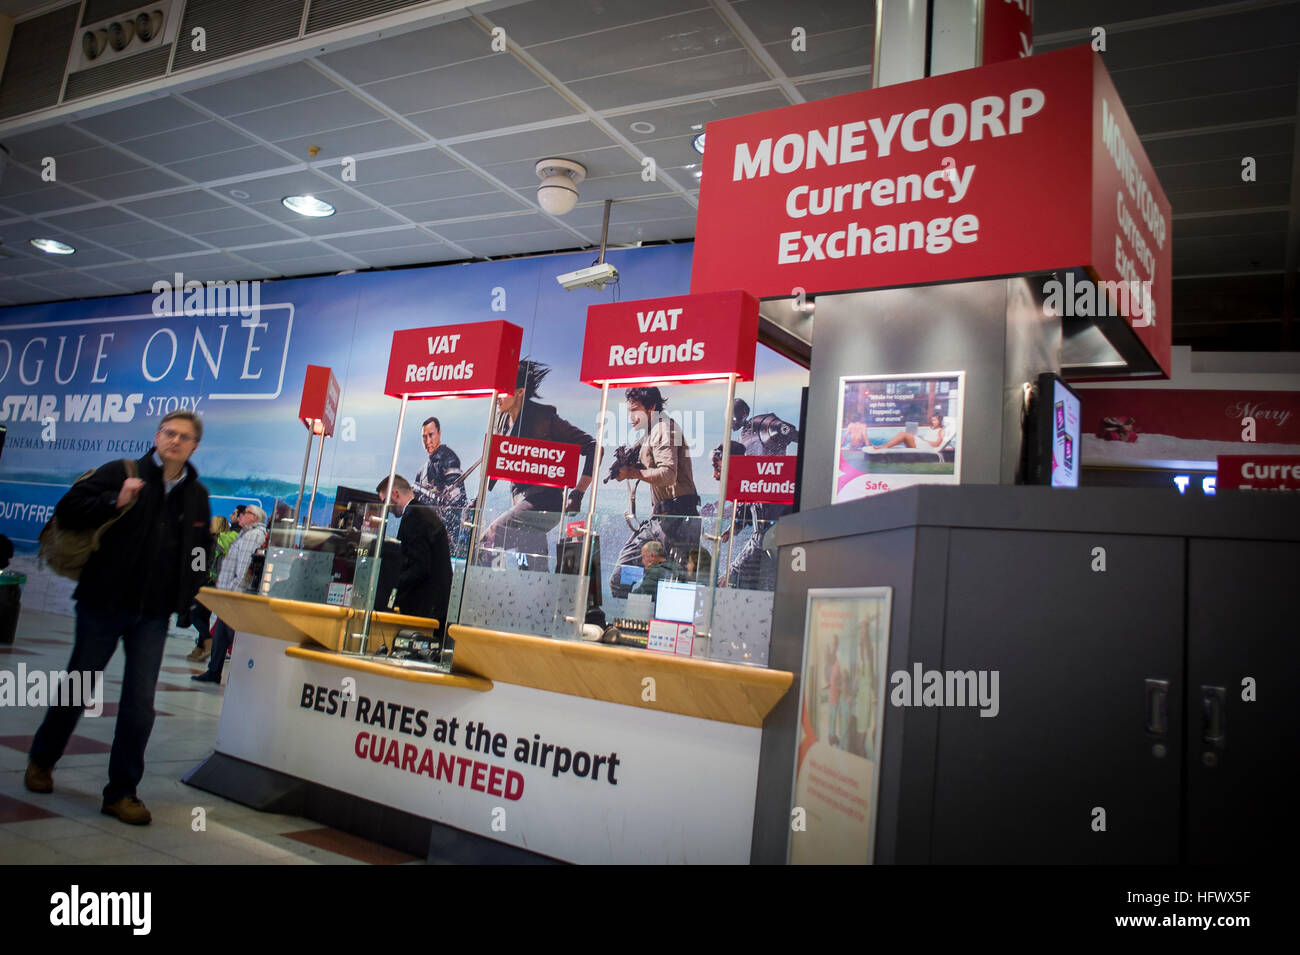 moneycorp currency exchange at the airport